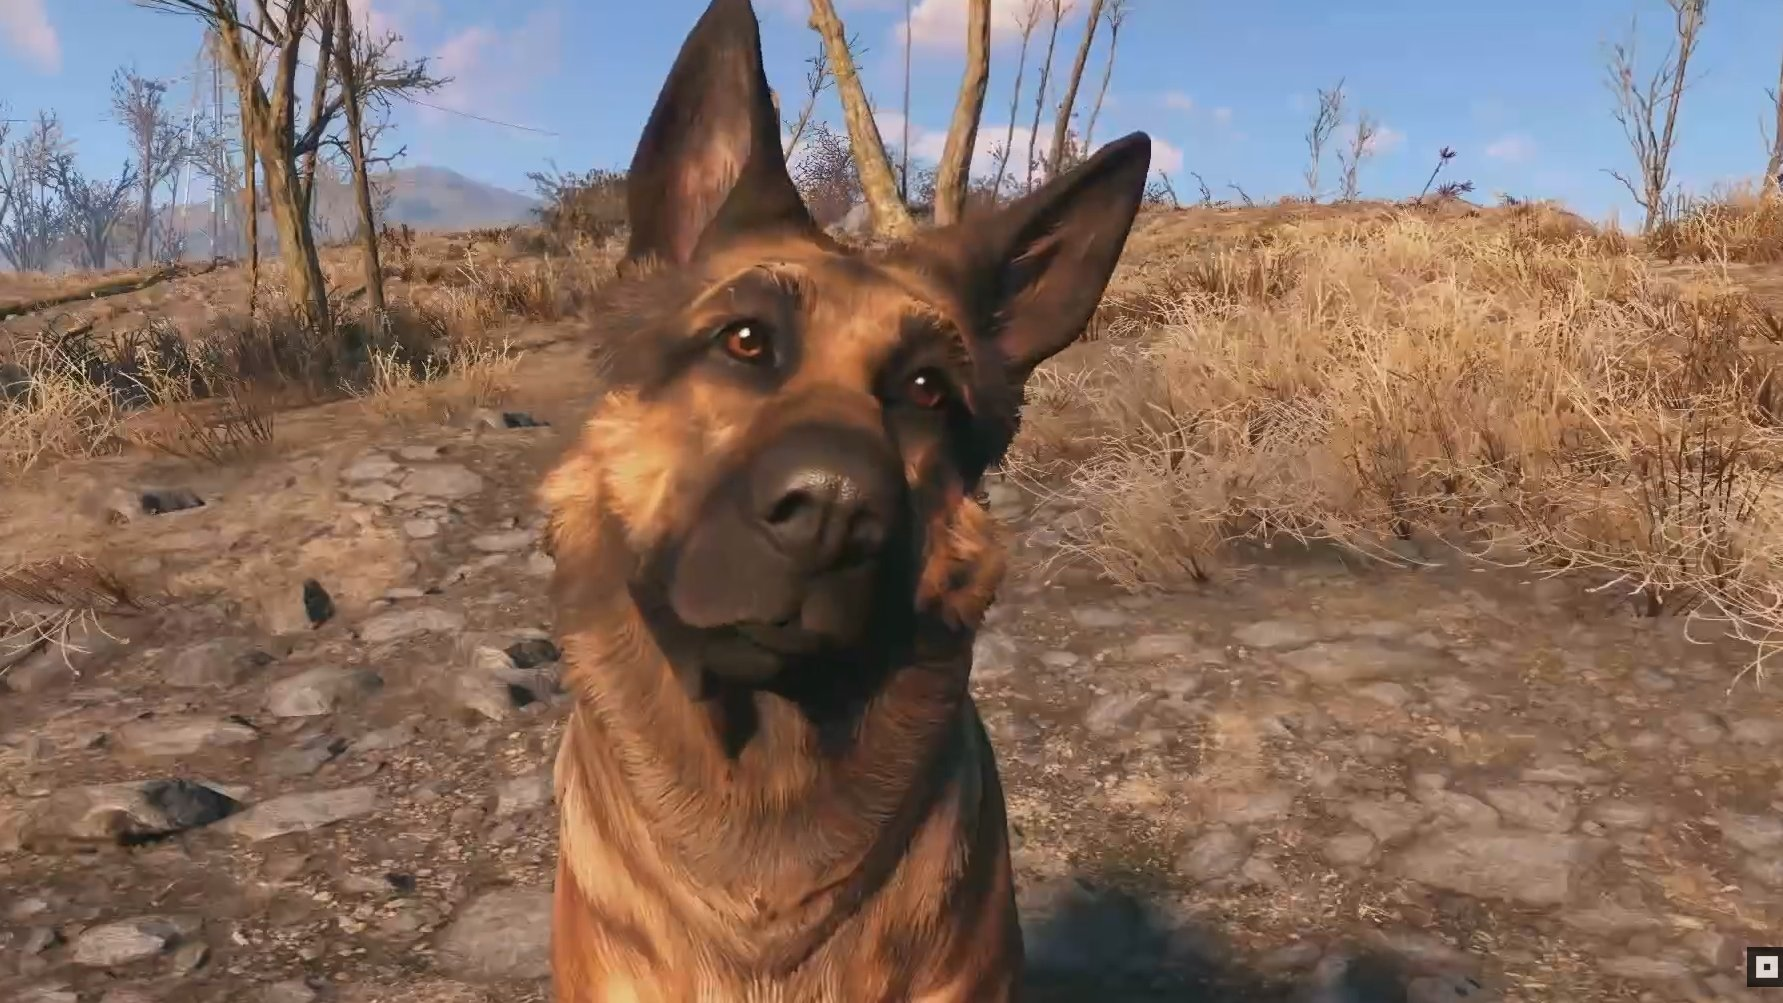 Fallout 4's Dogmeat wins Best Game Dog at the World Dog Awards